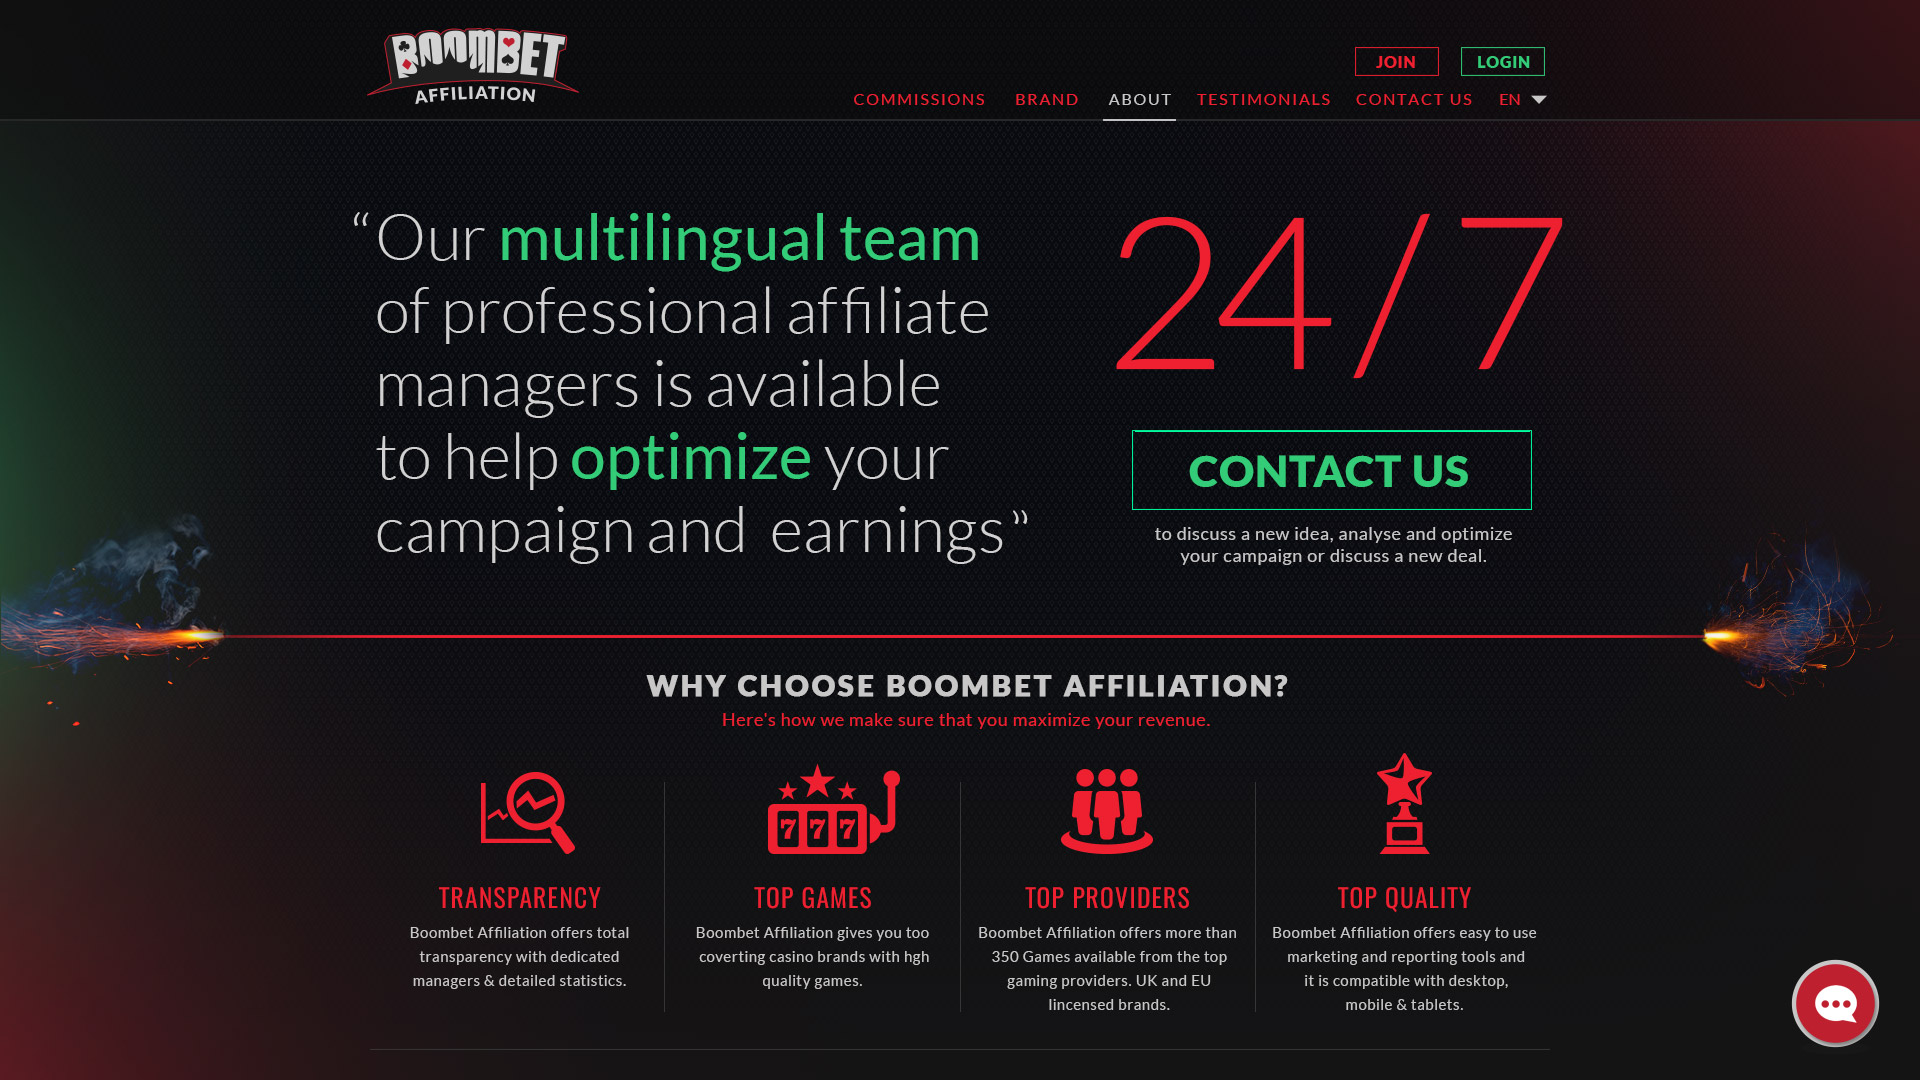 4_boombet-affiliation_about